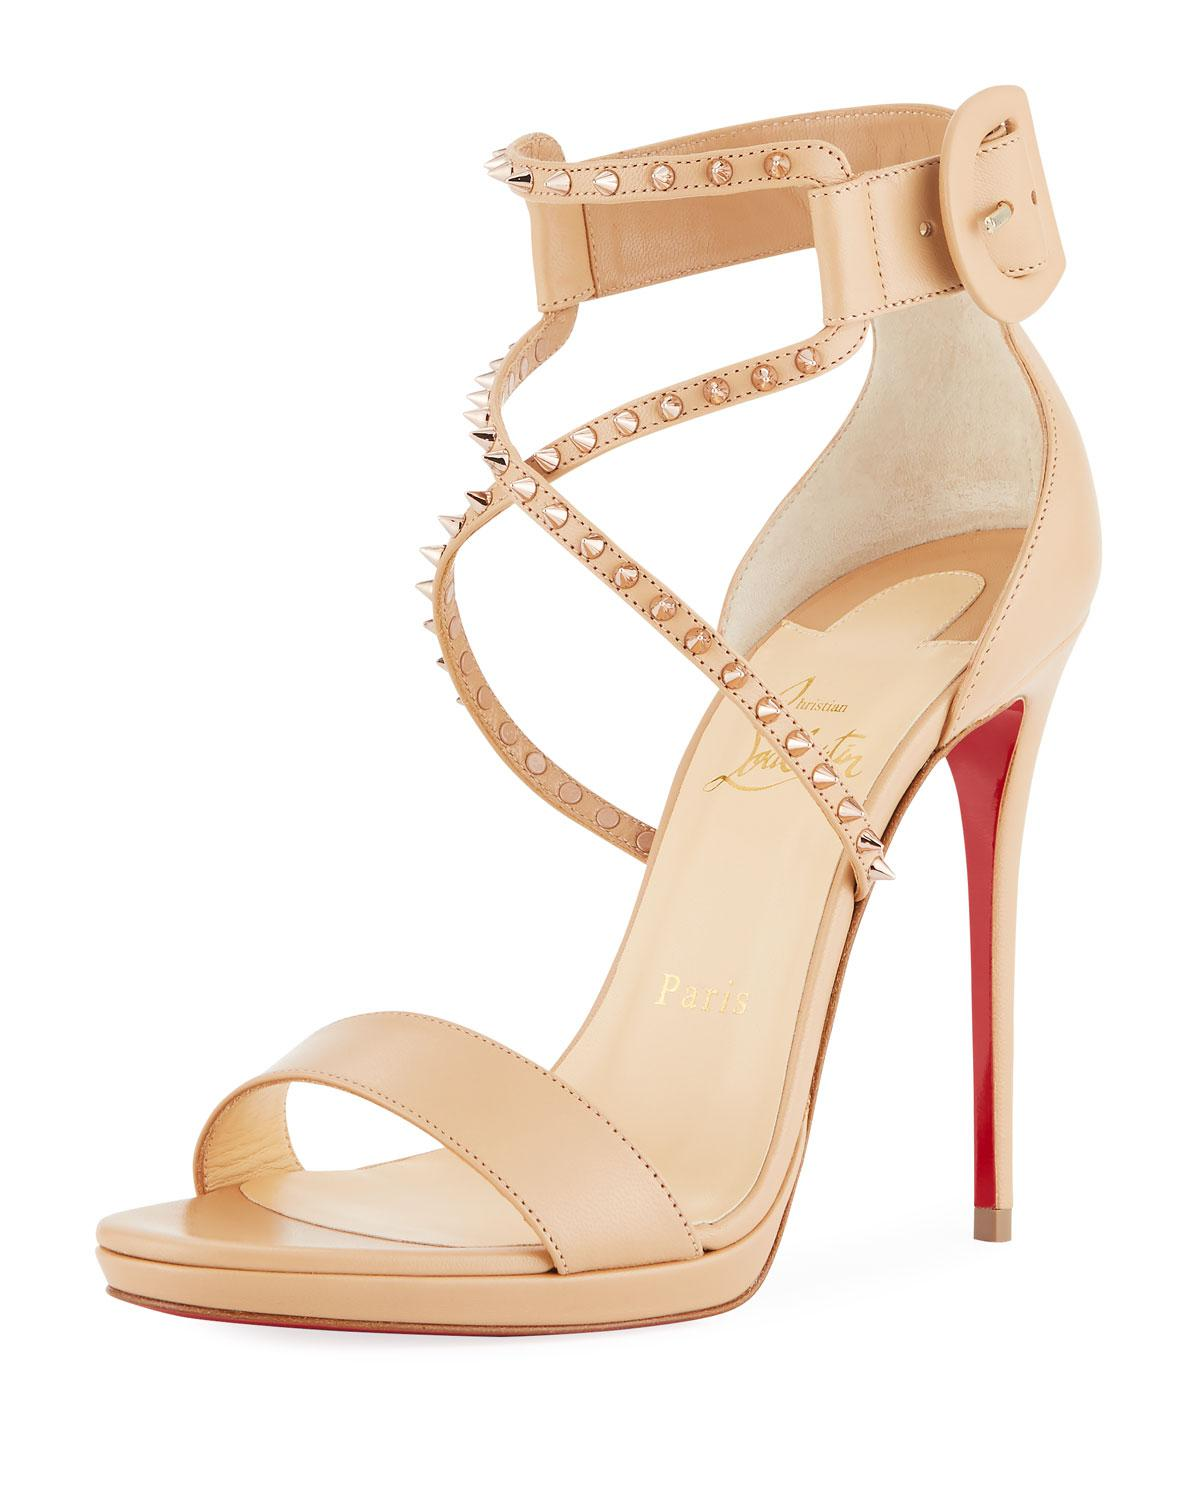 2af5f8ddbfe Christian Louboutin Choca Lux High Red Sole Sandal in Natural - Lyst